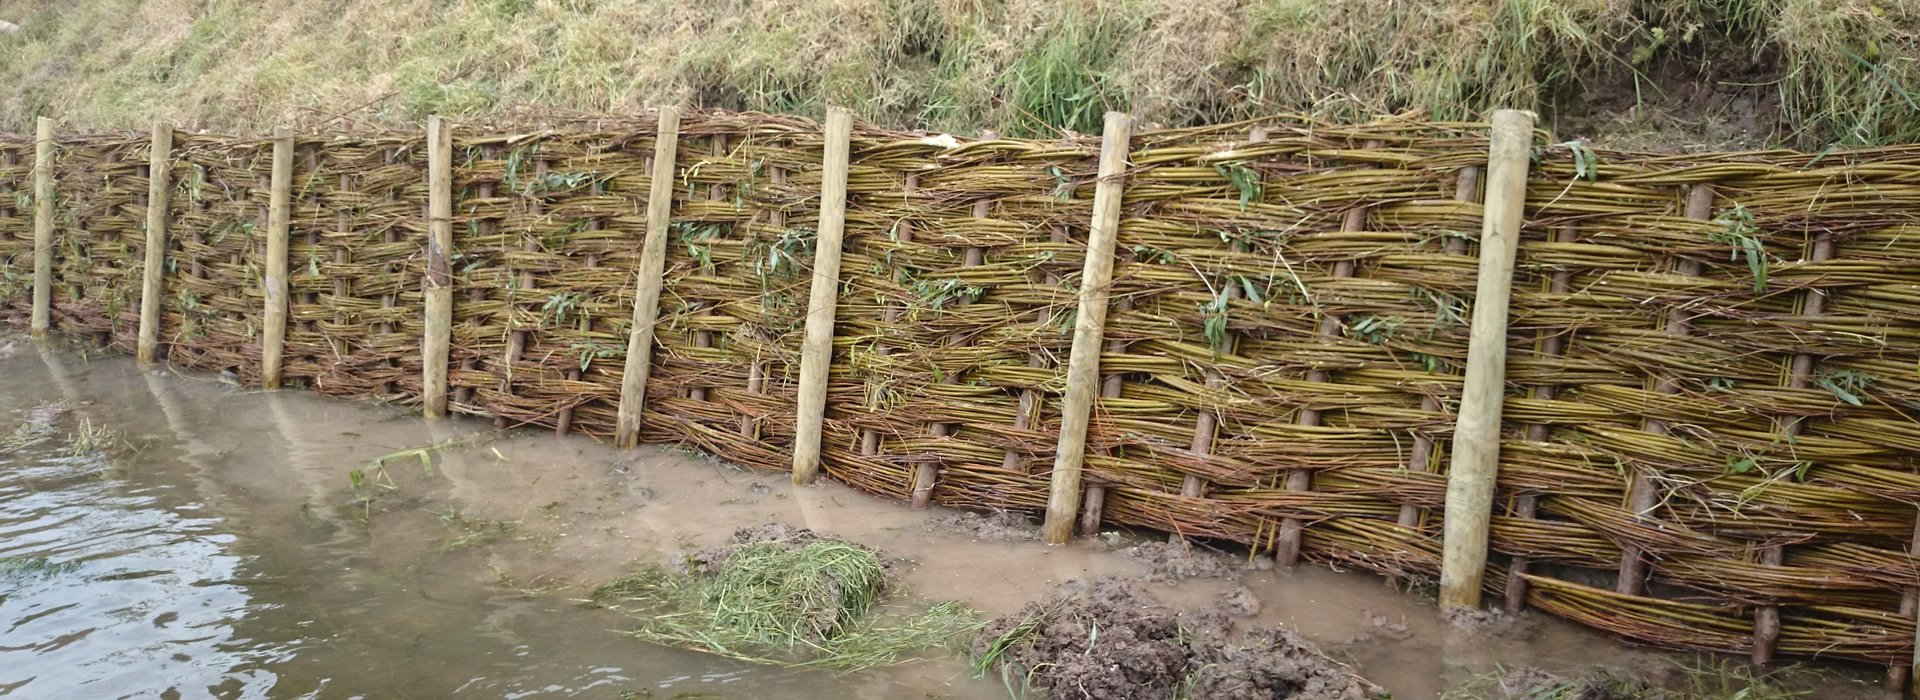 Natural materials for environmental river bank stabilisation